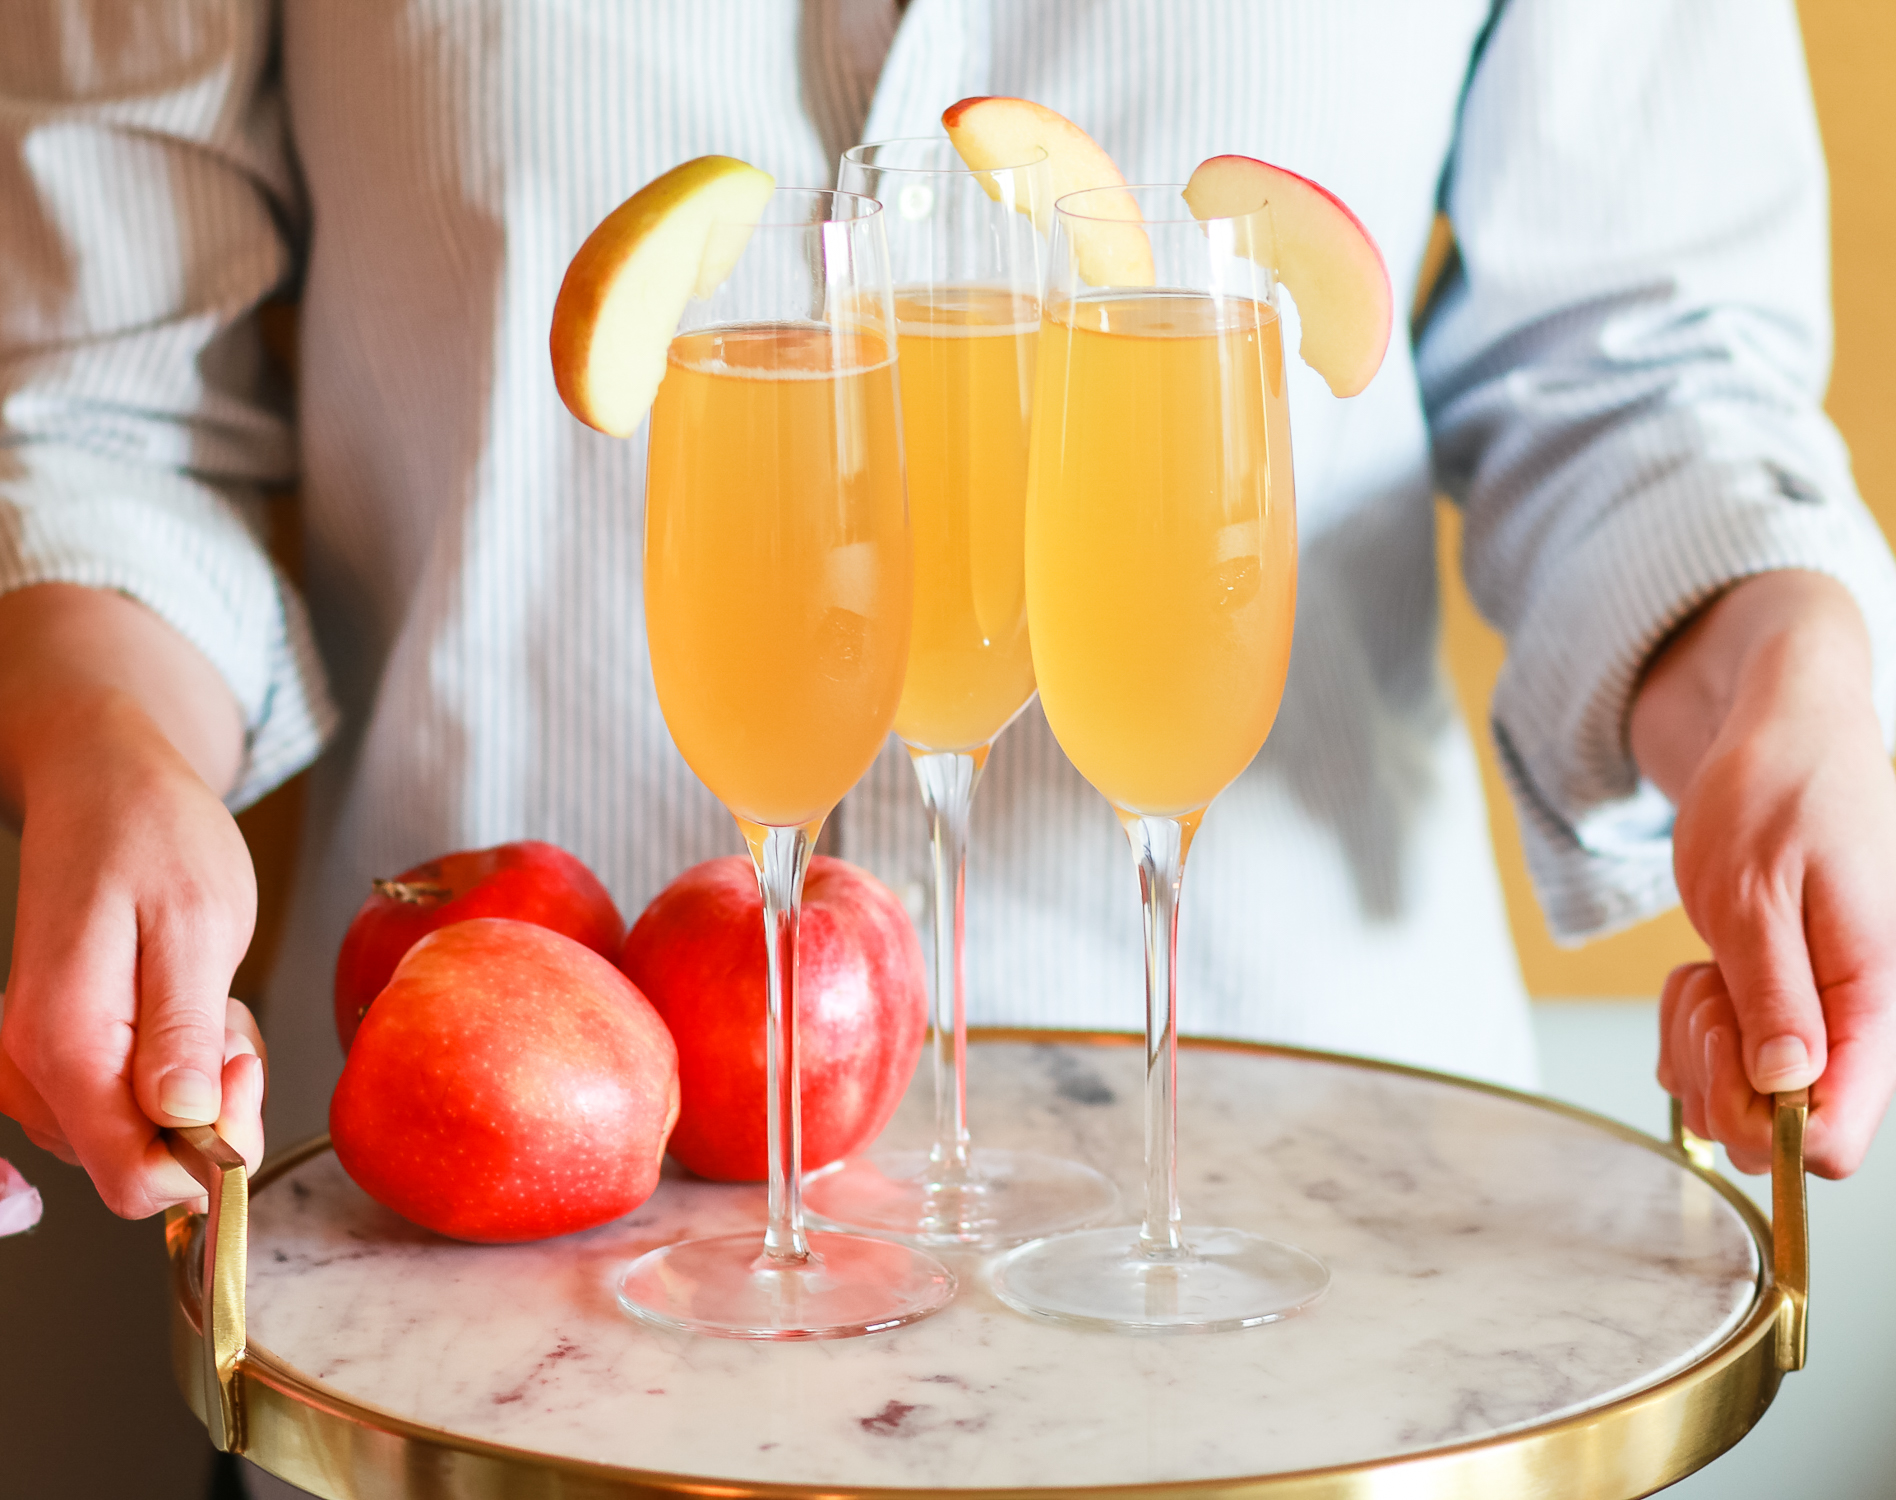 Seriously delish apple cider bellinis... such a fun fall champagne cocktail | Apple Cider Cocktail | Fall in a Flute: Festive Apple Cider Bellinis from southern blogger Stephanie Ziajka from Diary of a Debutante